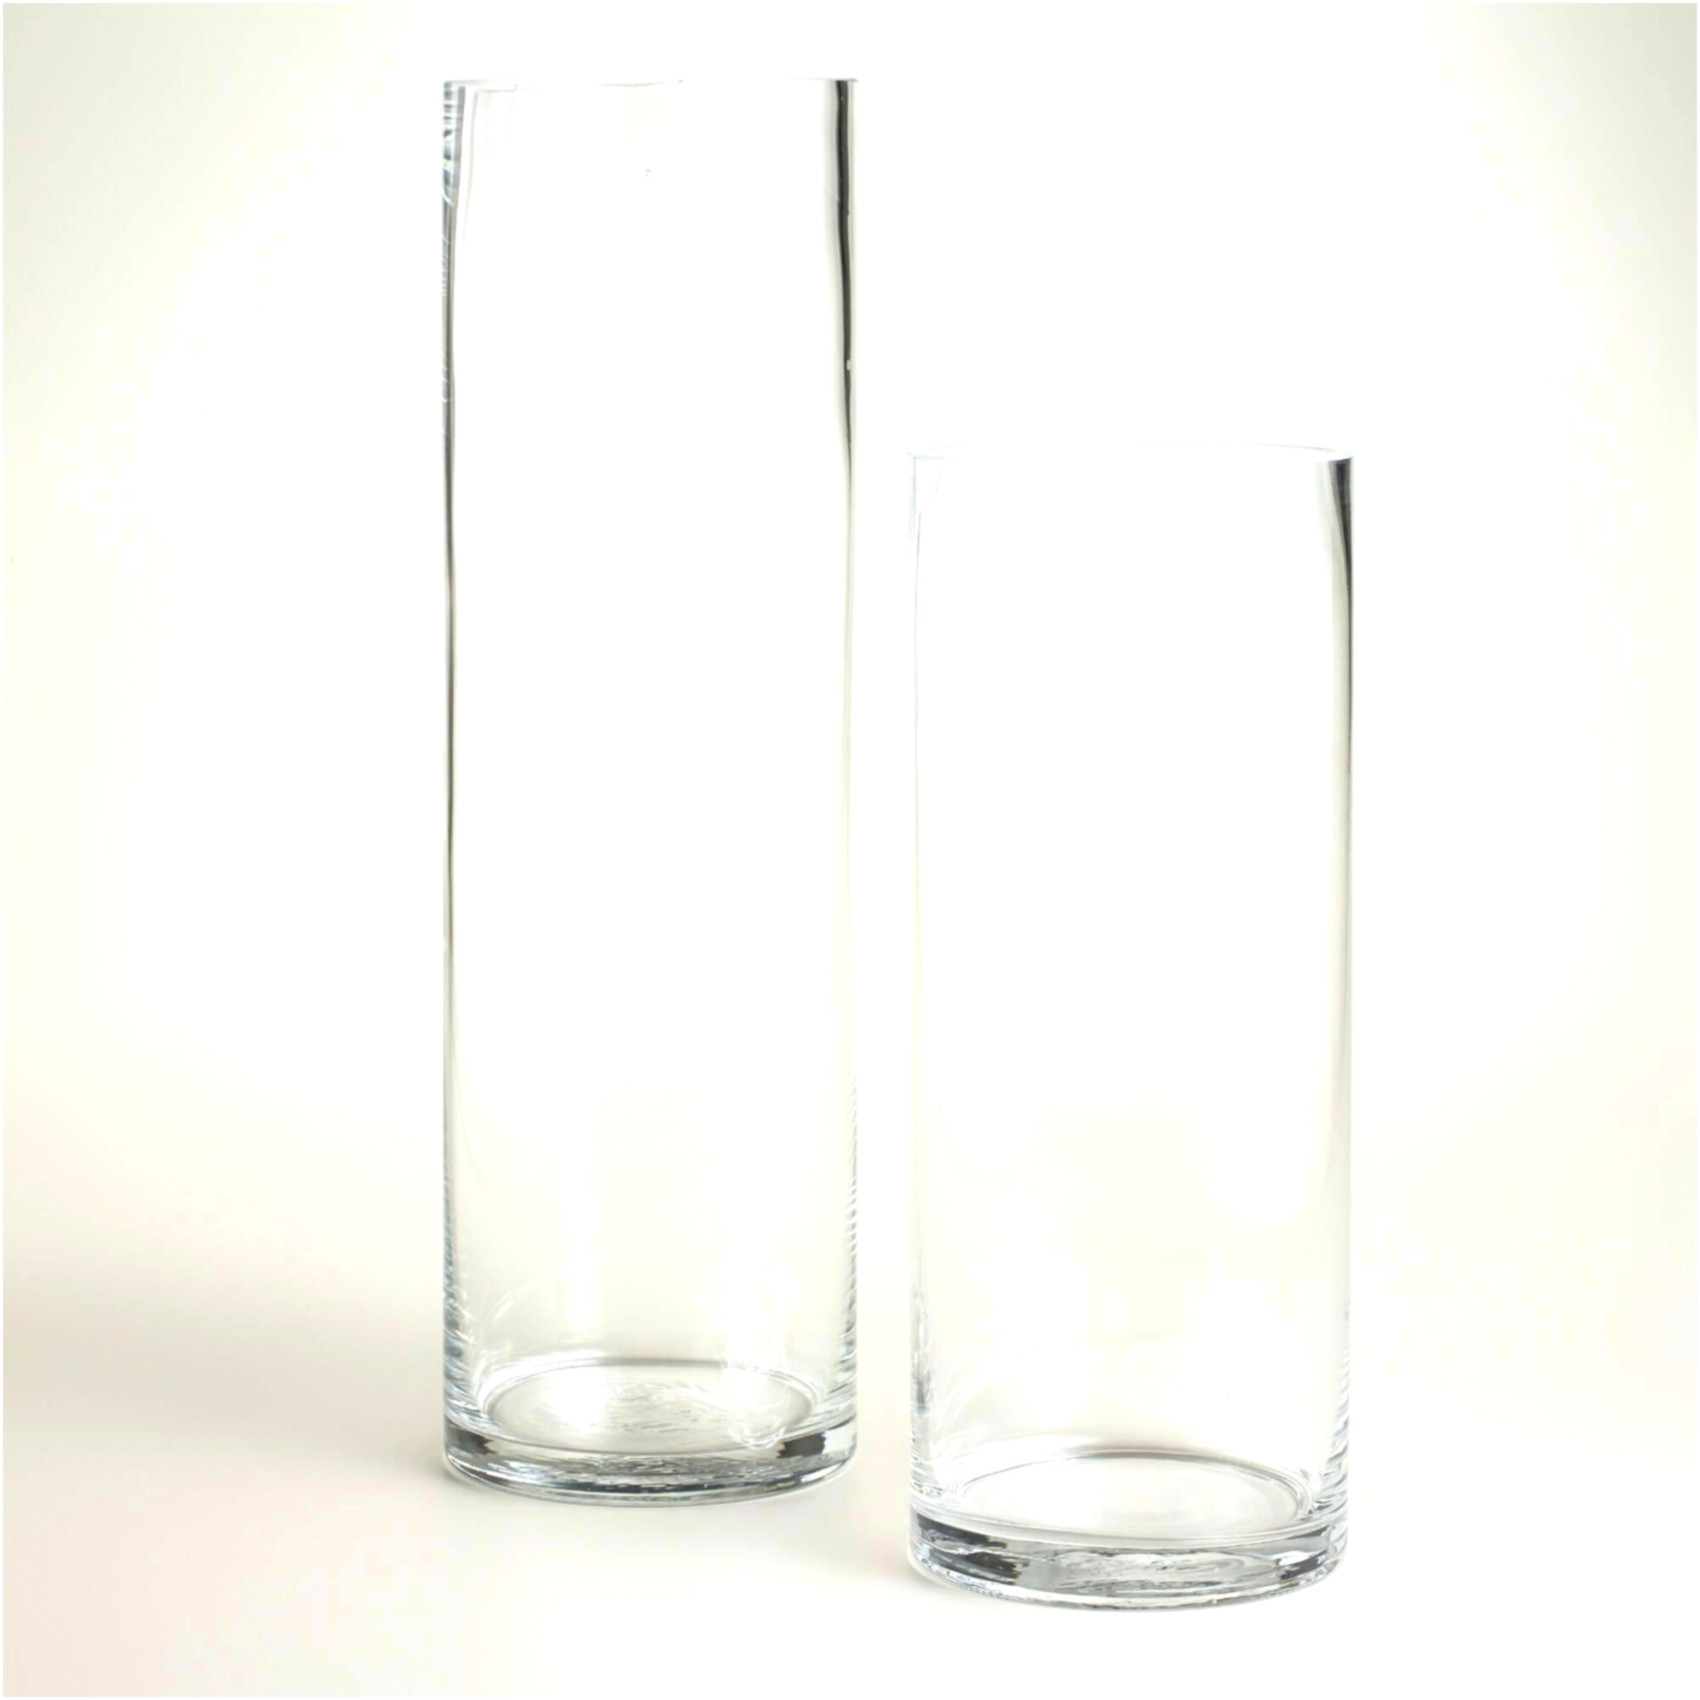 24 inch cylinder vases bulk of why you should not go to glass vases wholesale glass vases inside crystal glass vases wholesale inspirational 30 elegant vases with